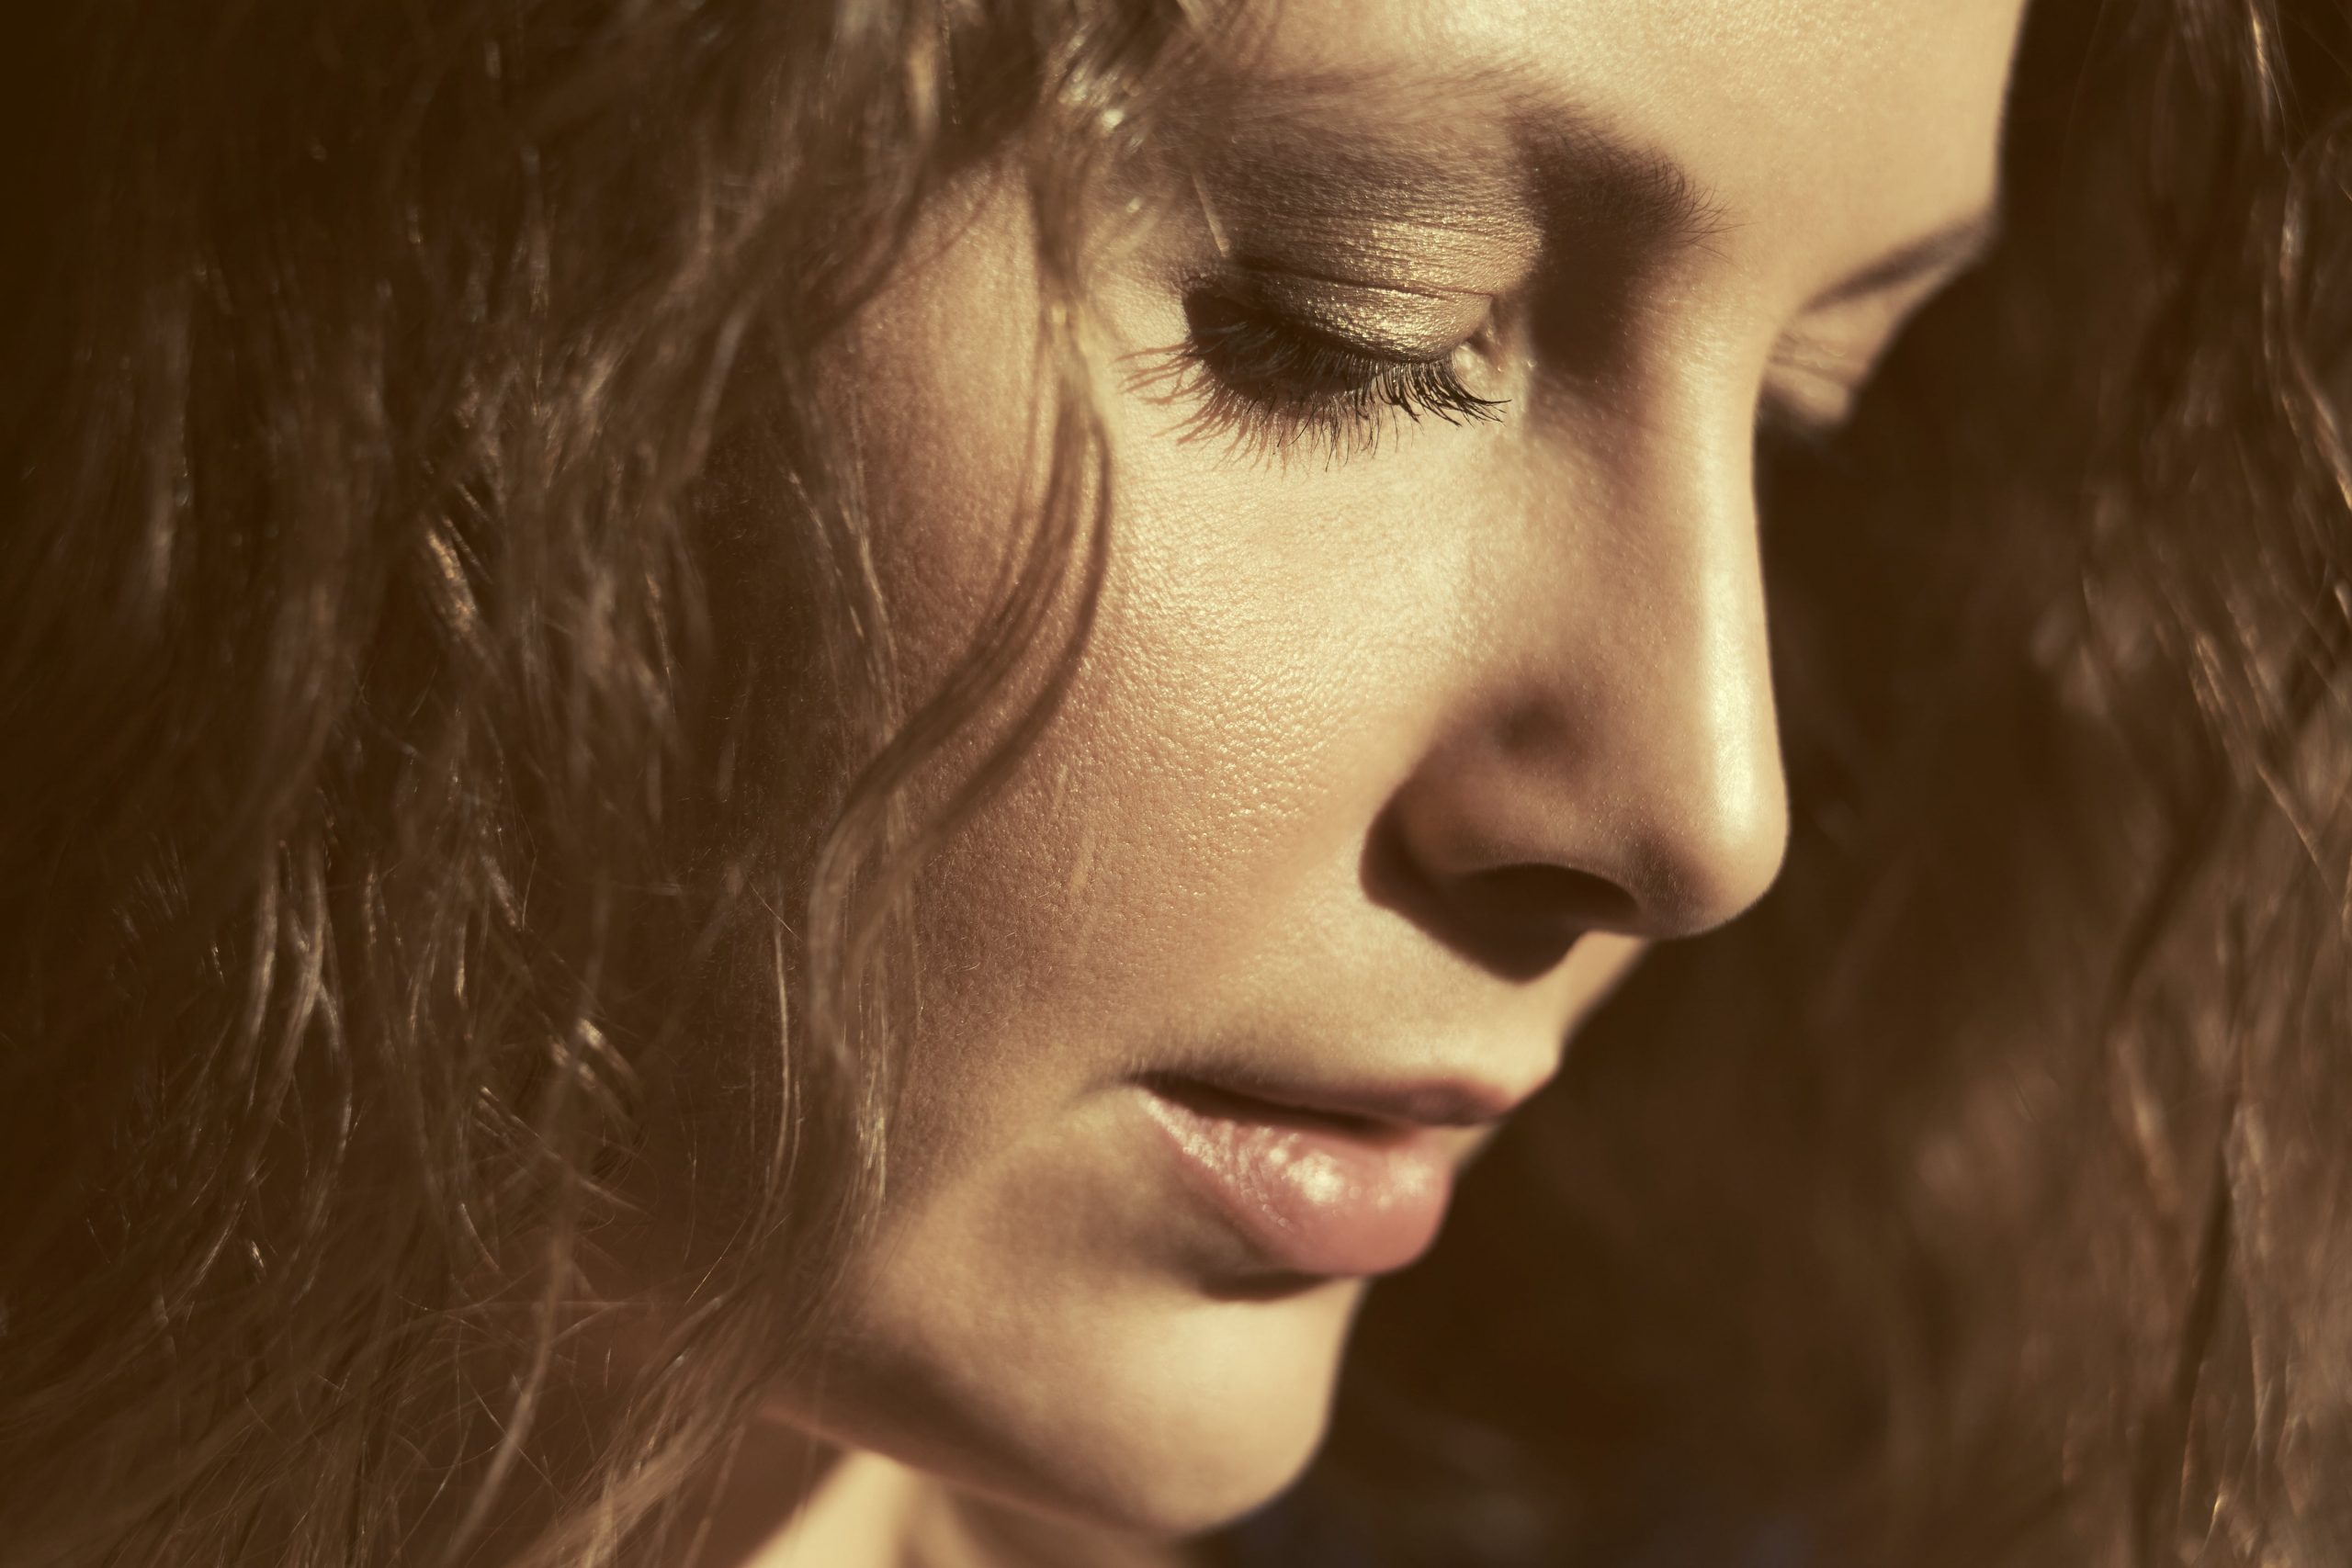 woman looking down in contemplation of meth use